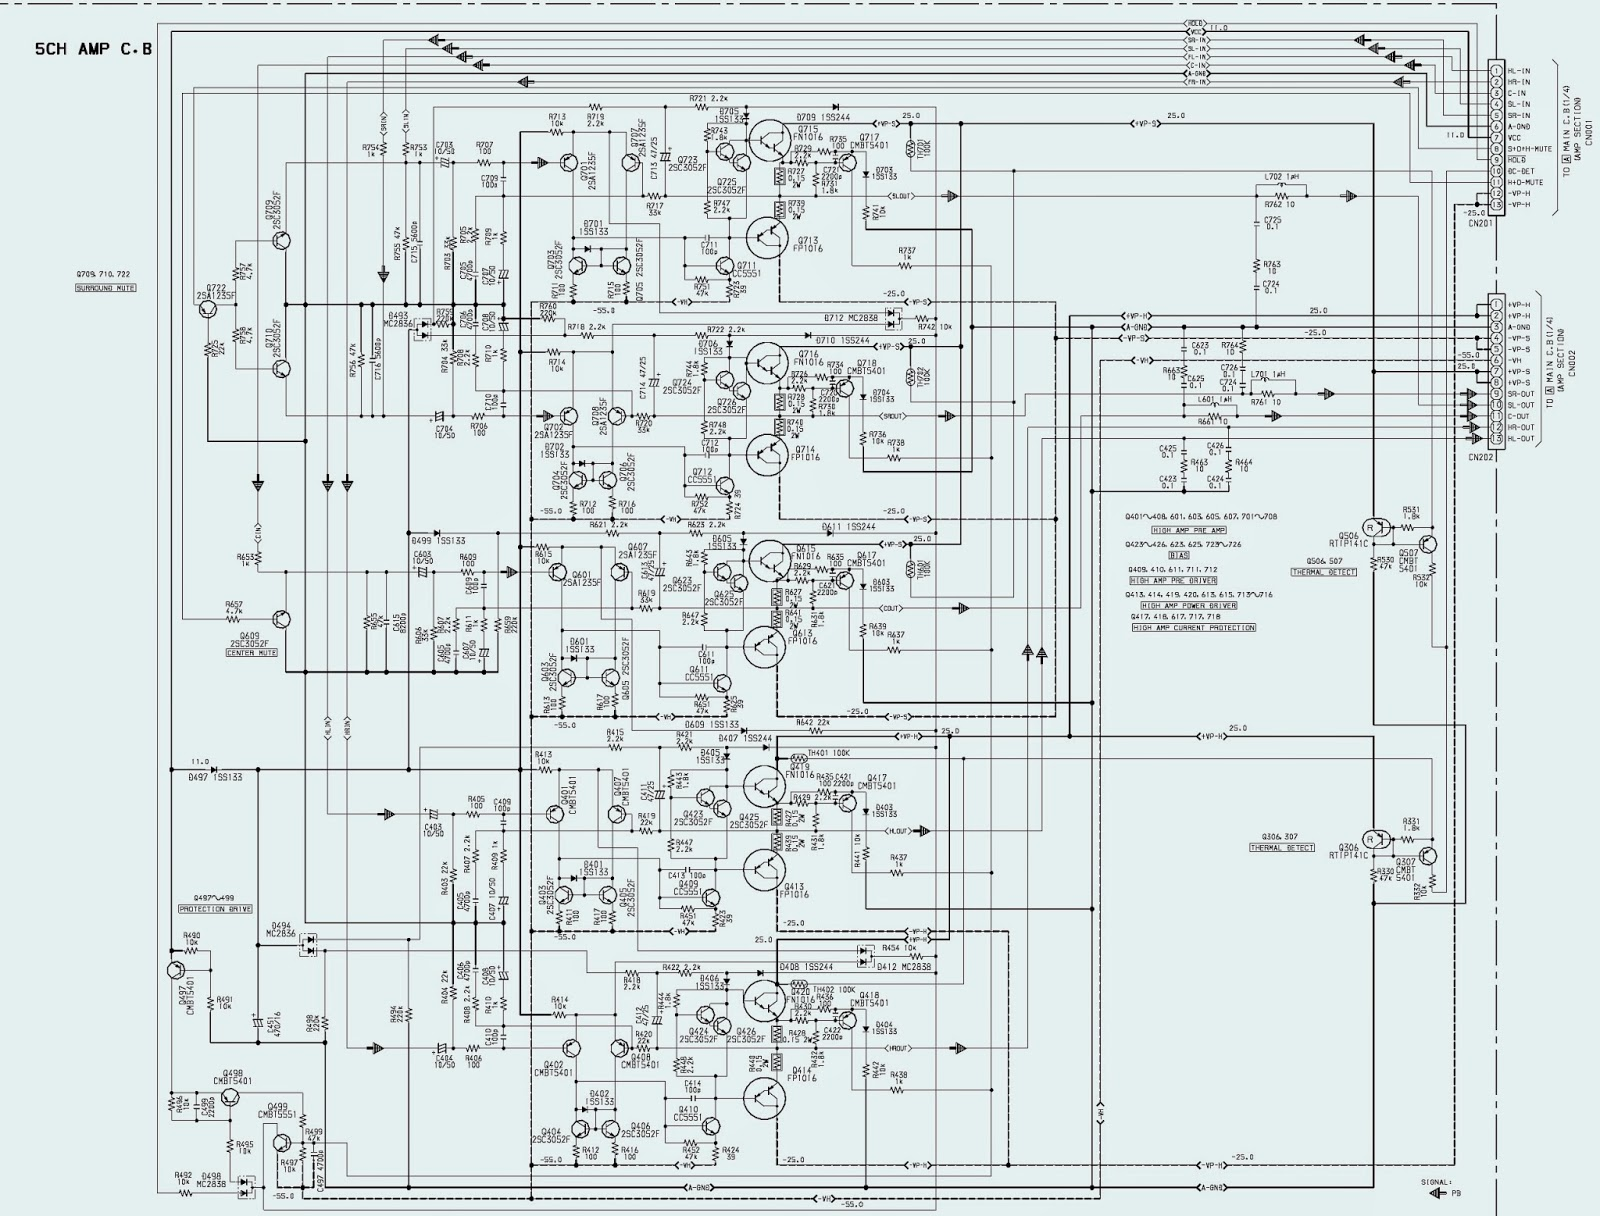 medium resolution of aiwa xh a1060 compact disc stereo system schematics electro help various diagram aiwa xh a1060 compact disc stereo system schematics